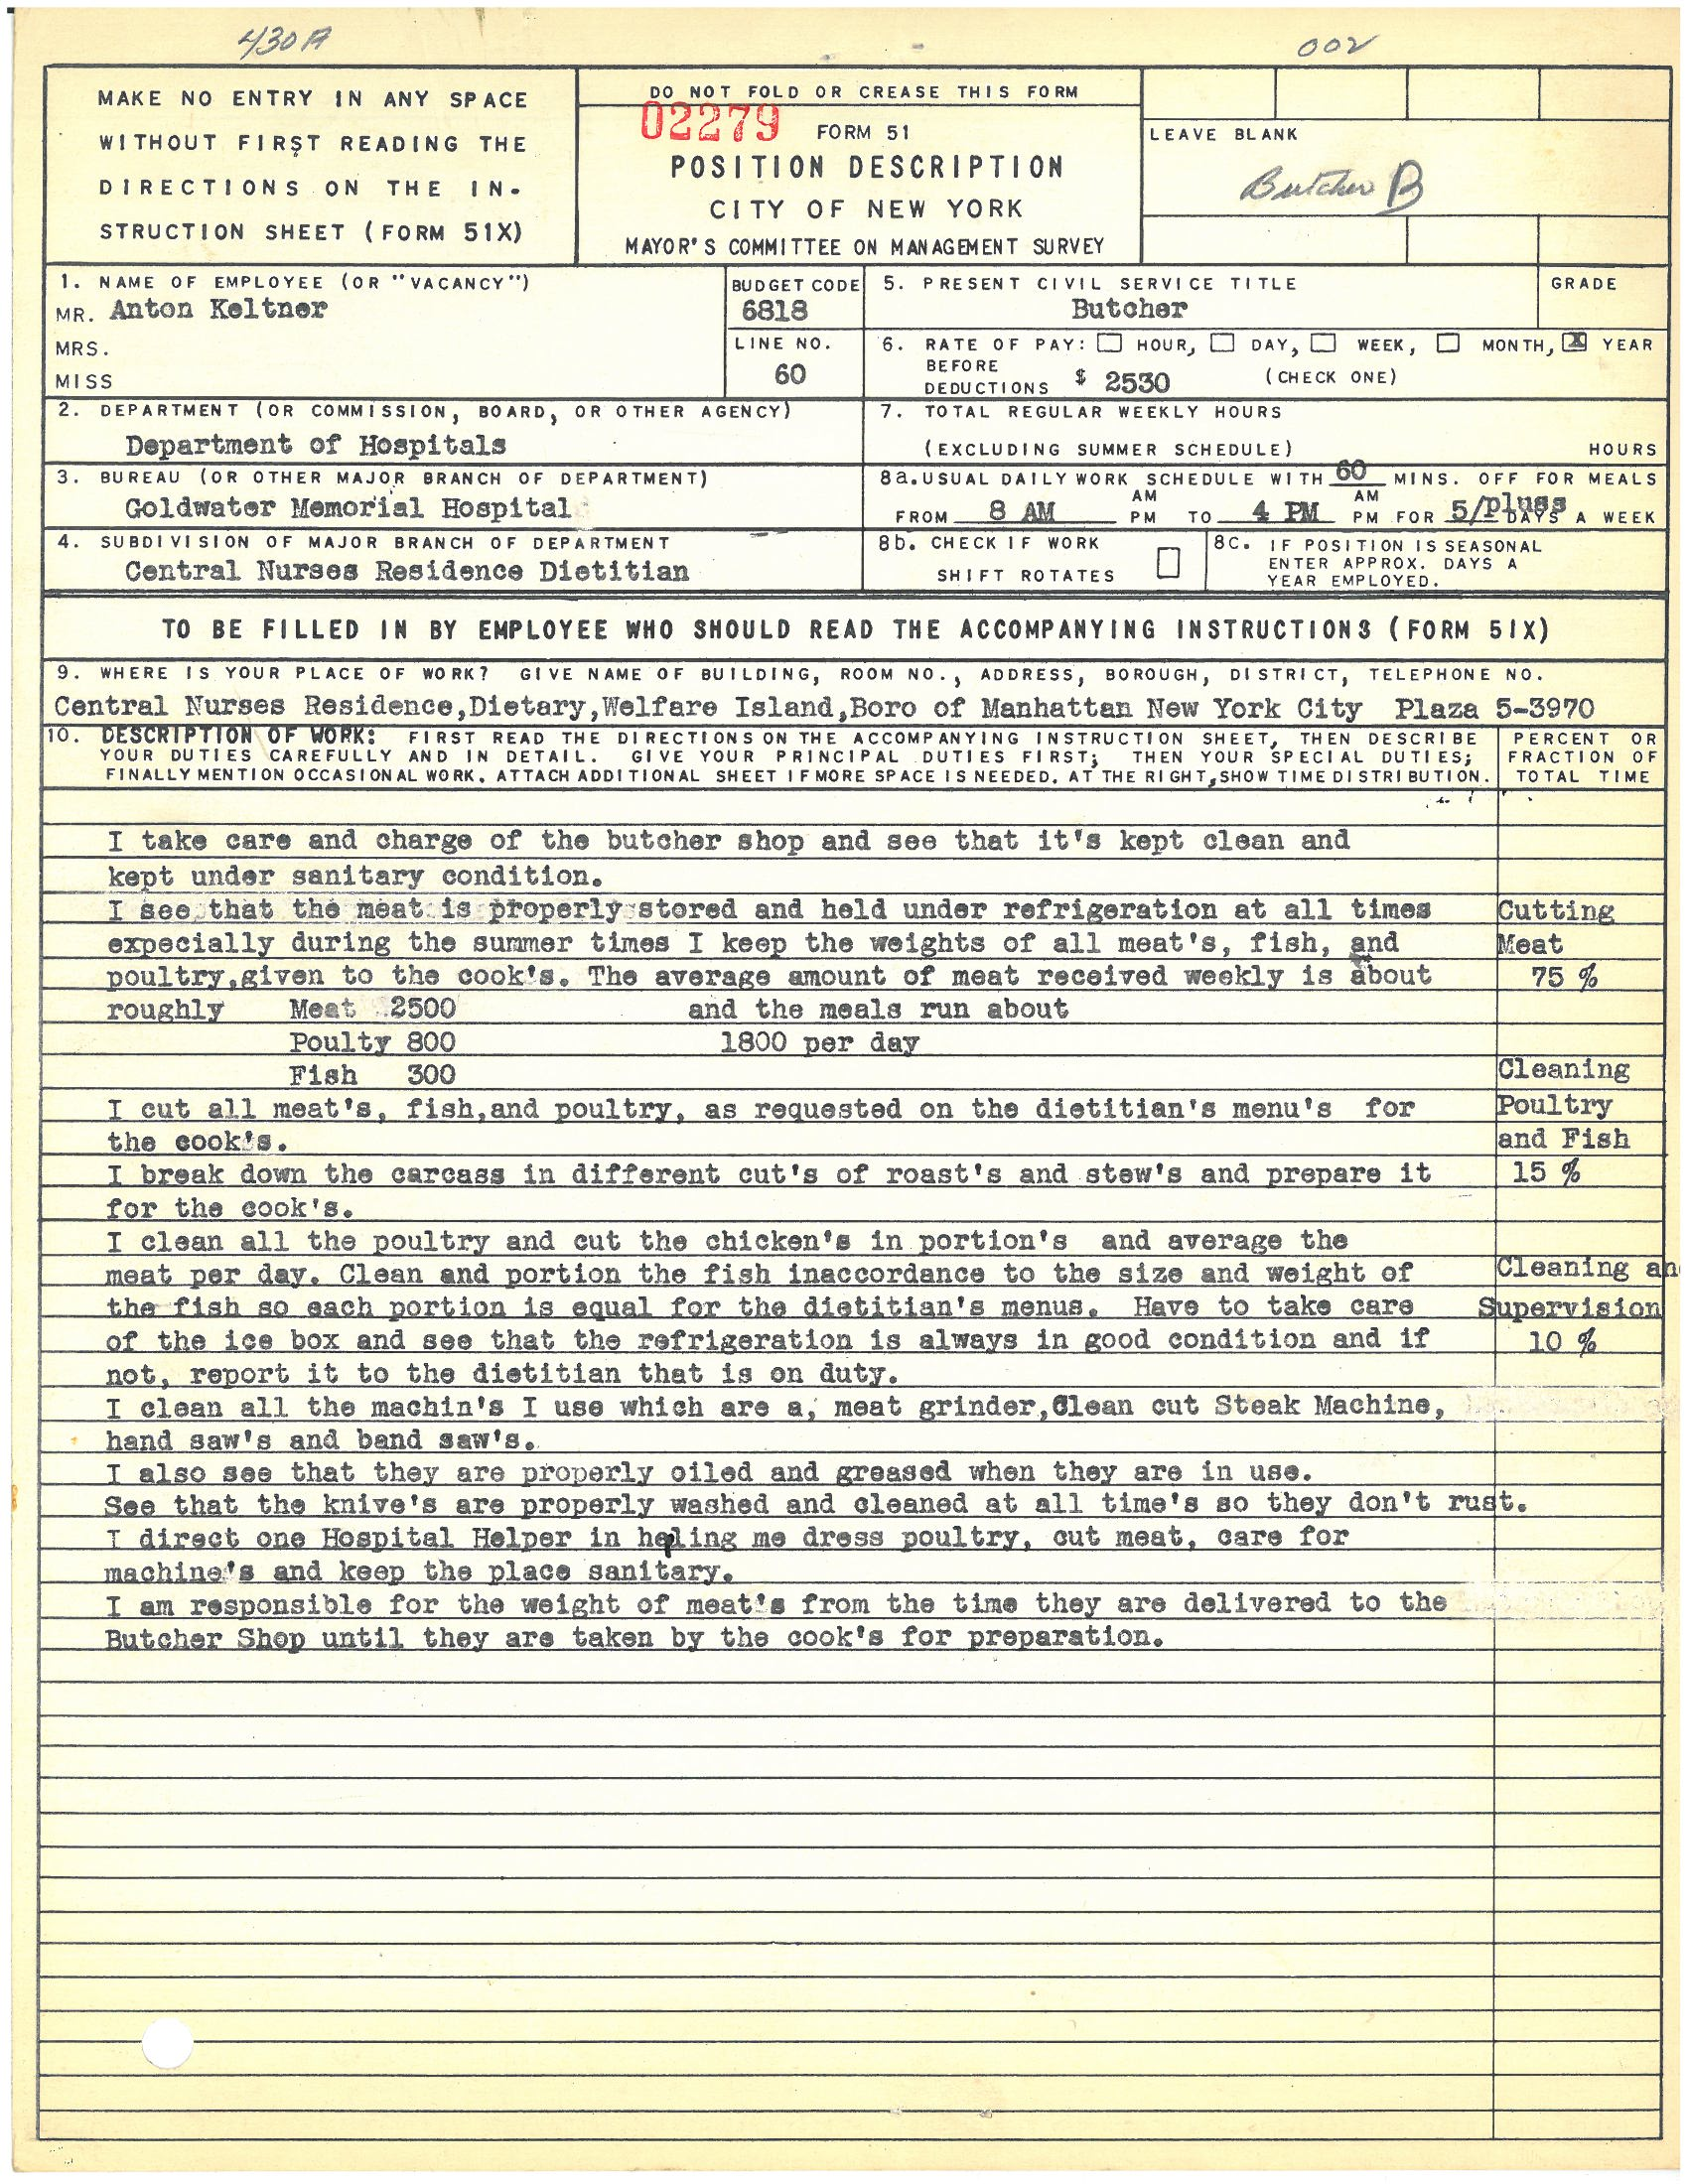 Form 51: Anton Keltner, Butcher, Goldwater Memorial Hospital. Mayor's Committee on Management Survey, circa 1950. NYC Municipal Archives.